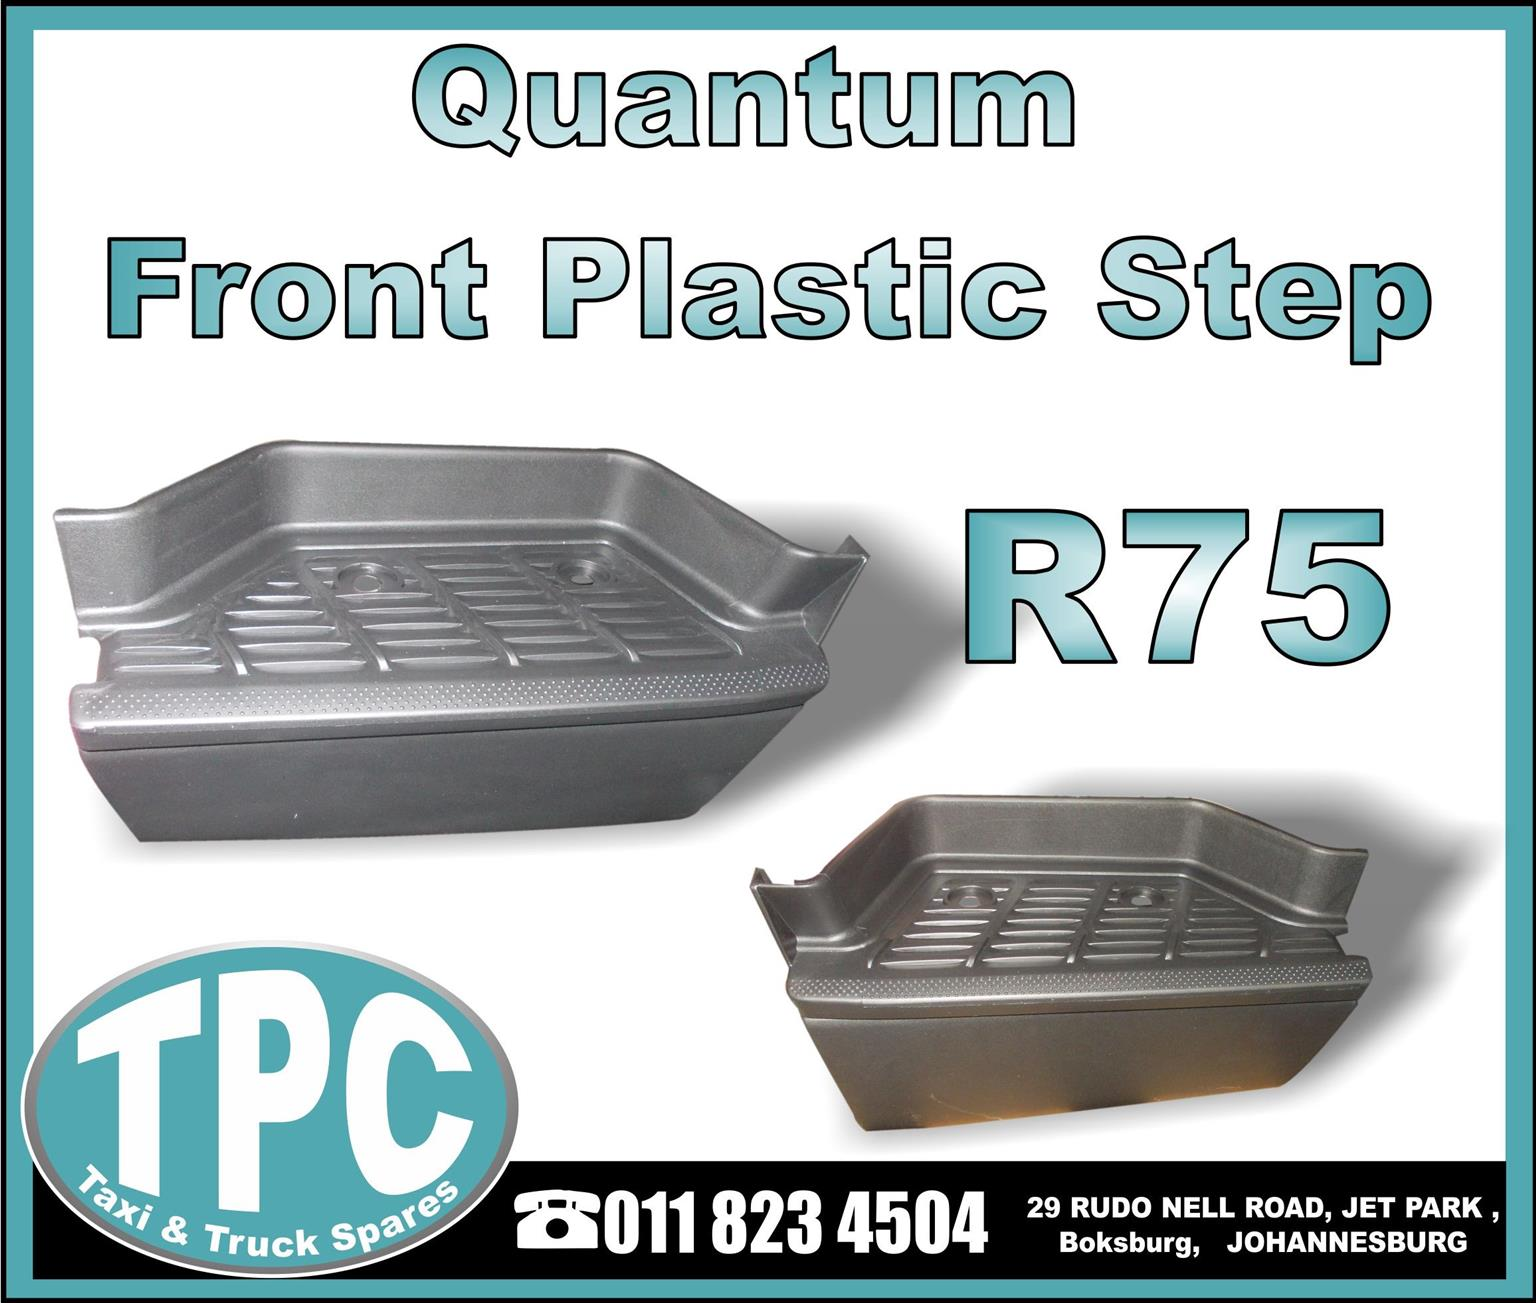 Toyota Quantum Front Plastic Step - New Replacement Parts.